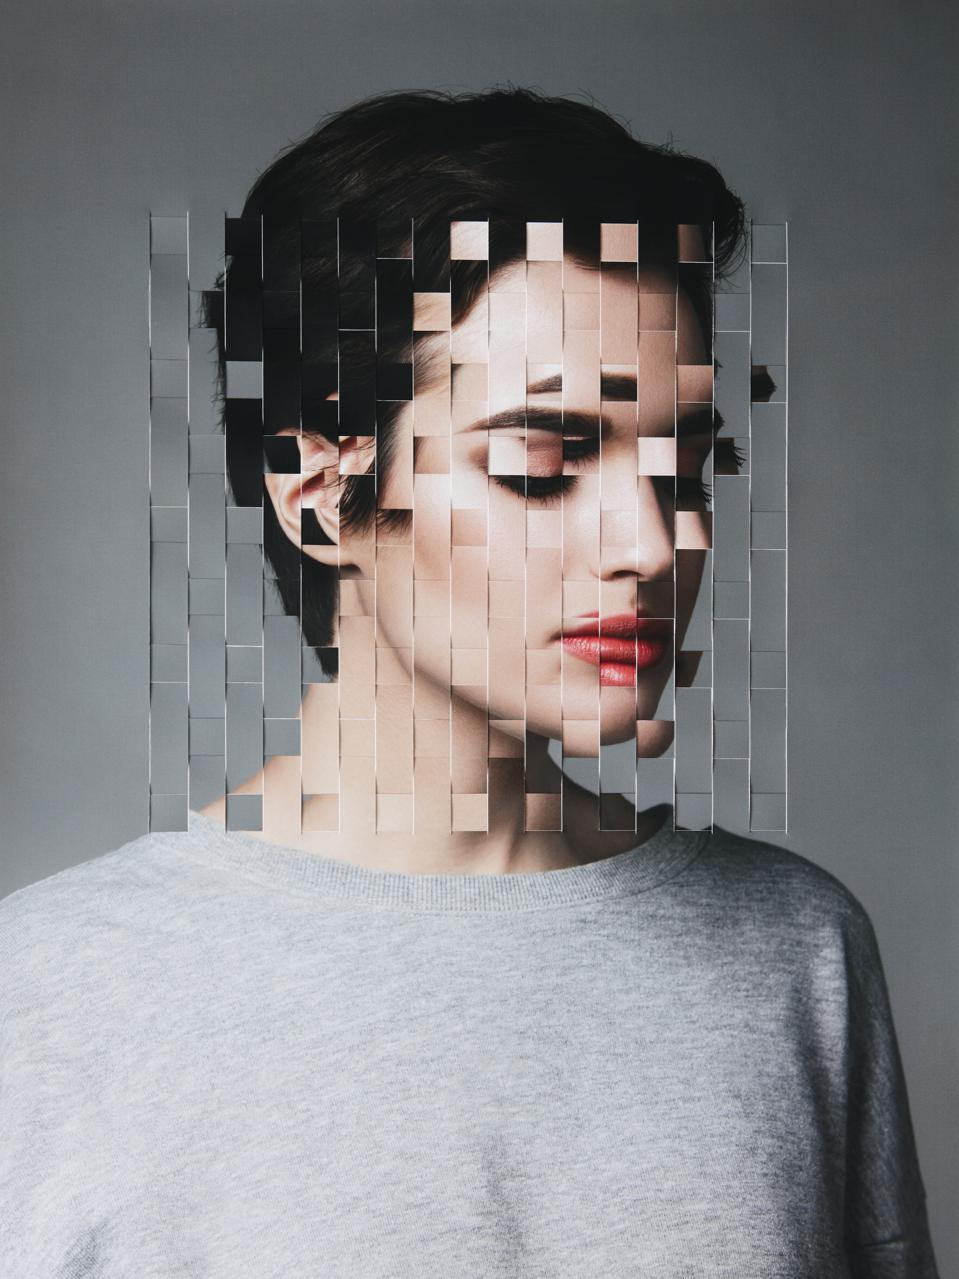 Female portrait with collaged face parts